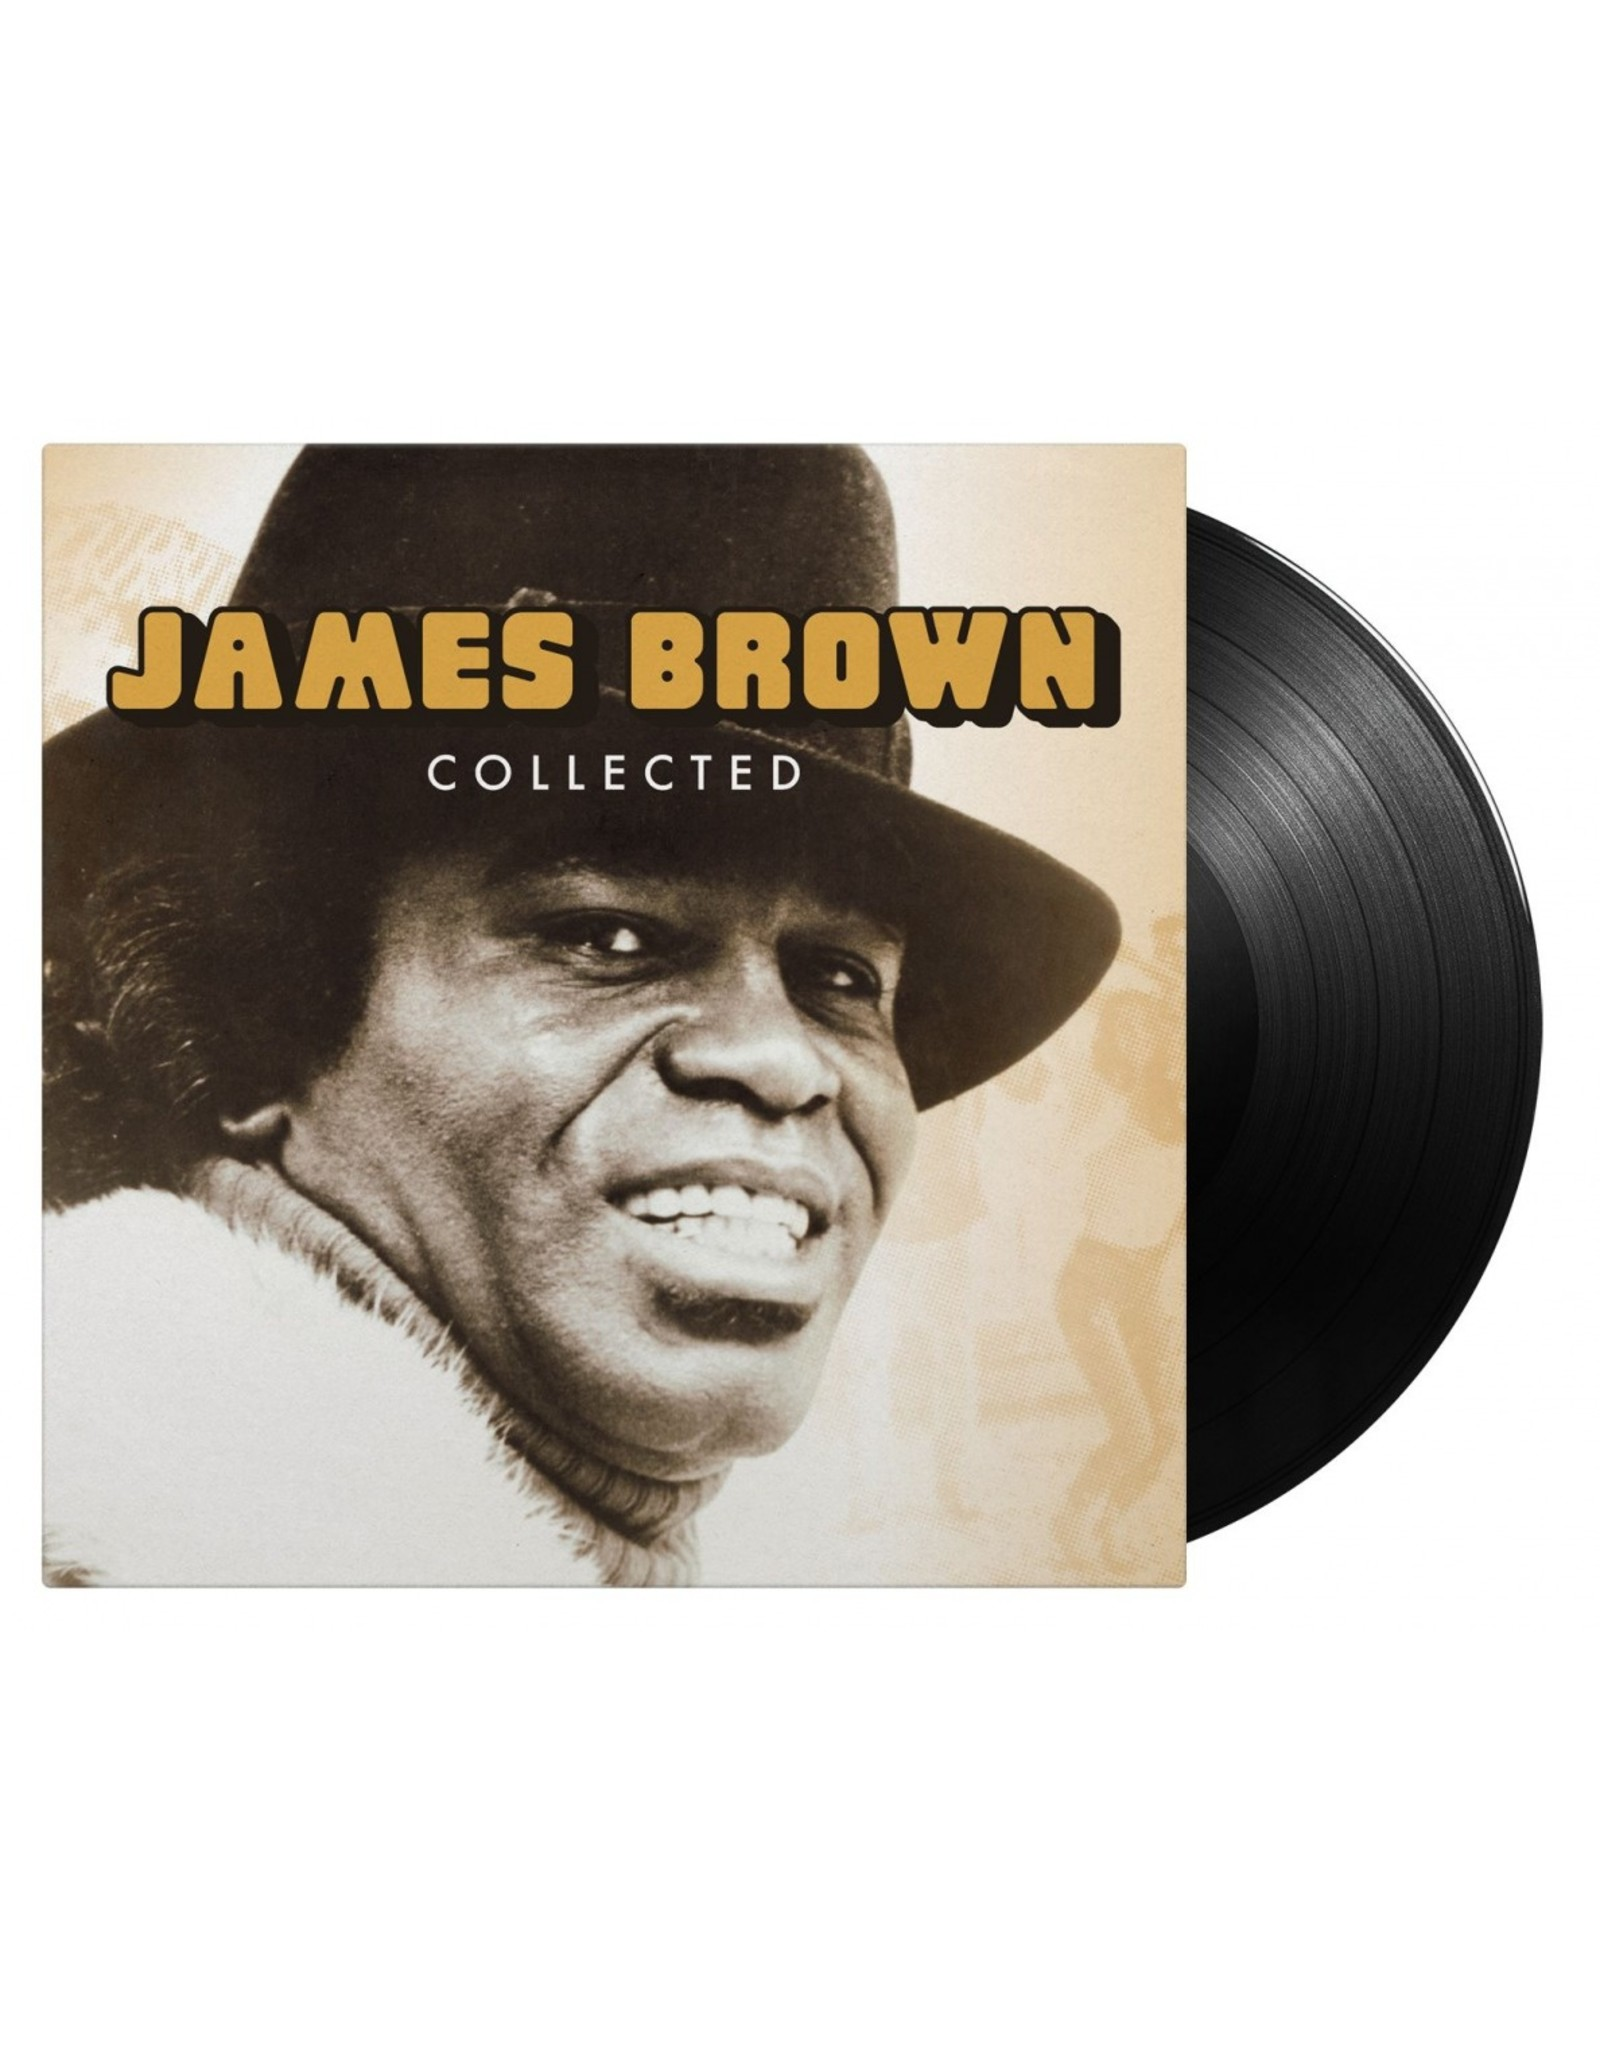 James Brown - Collected (Music On Vinyl) [Stone Cold Vinyl]